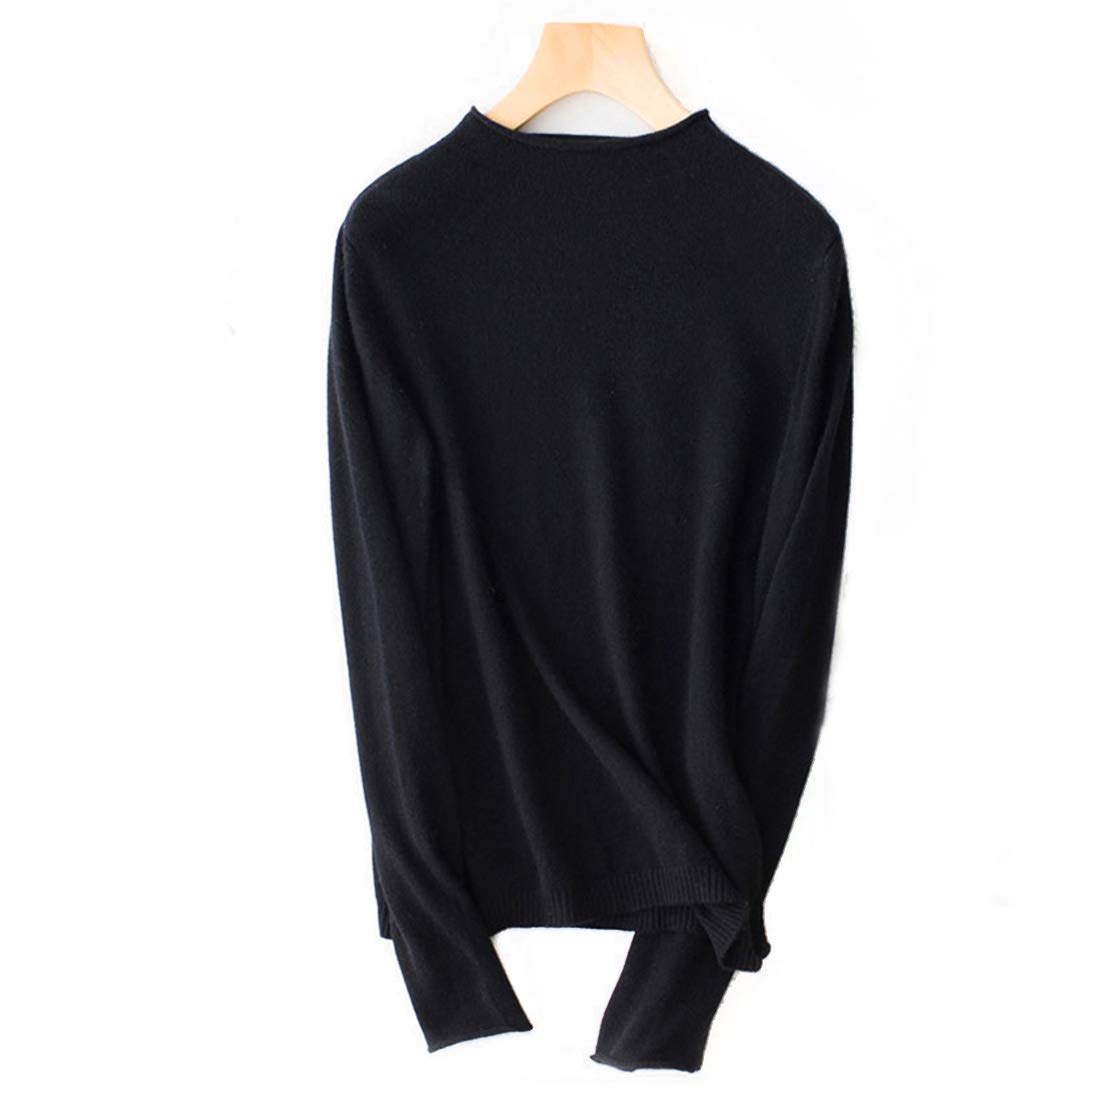 Black CEFULTY Women's High Quality Cashmere Sweater Long Sleeve Feminine OL Style Office Workers Comfortable Fabrics